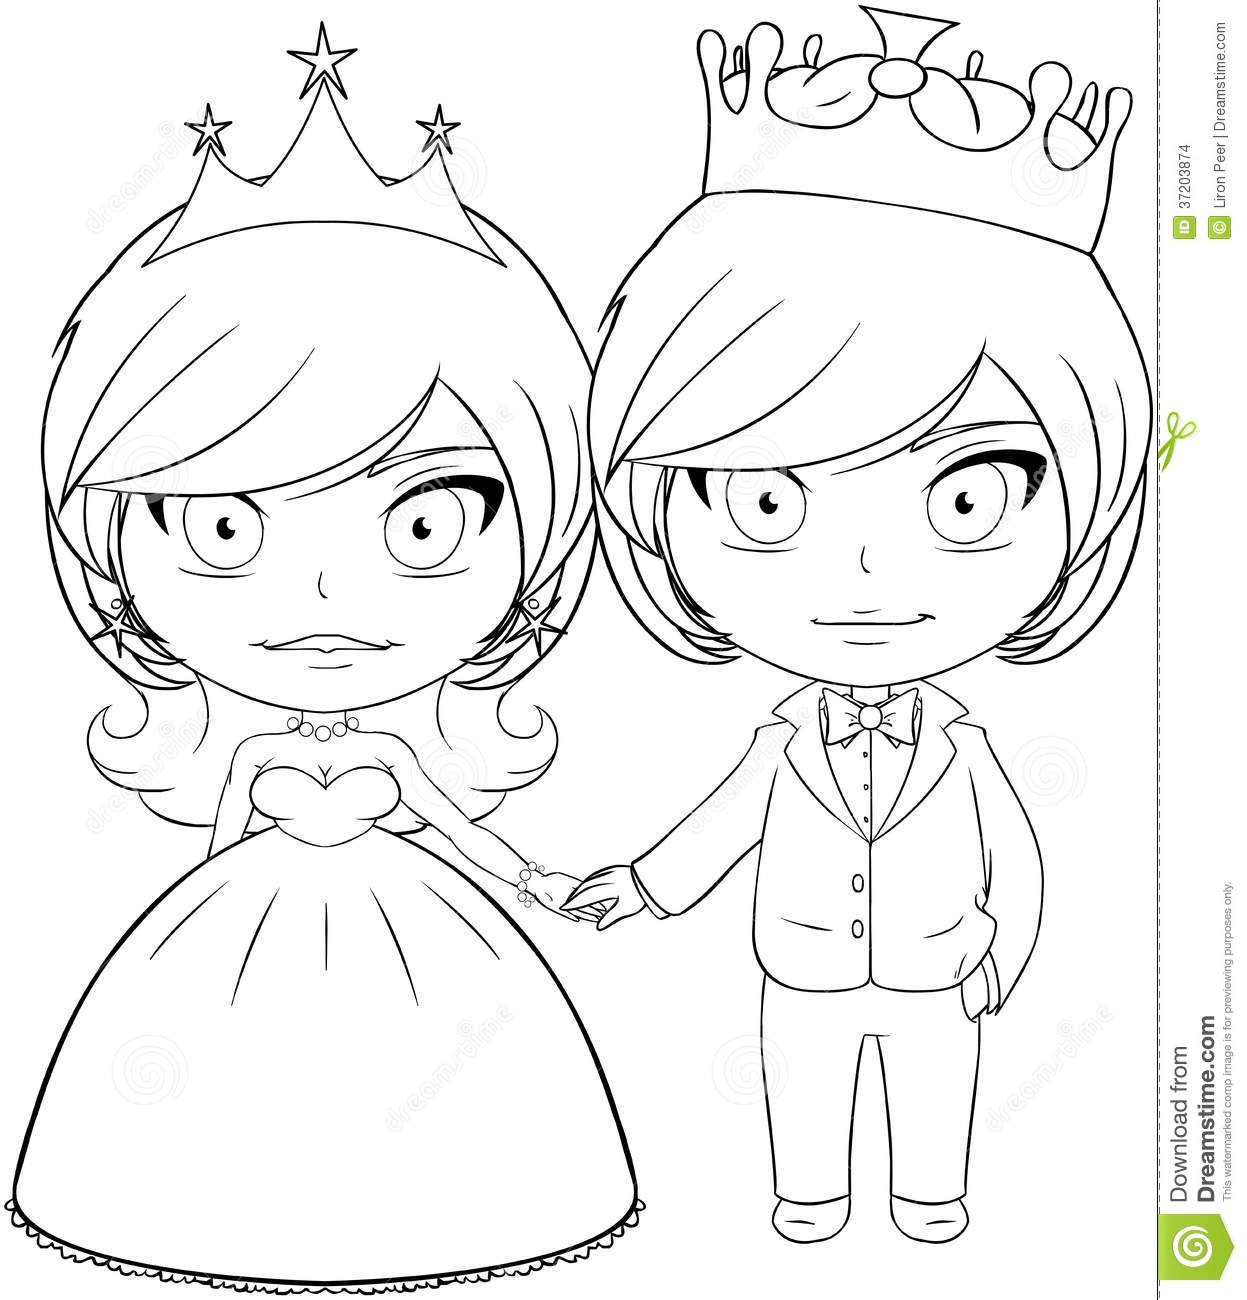 prince and princess coloring page 2 royalty free stock image